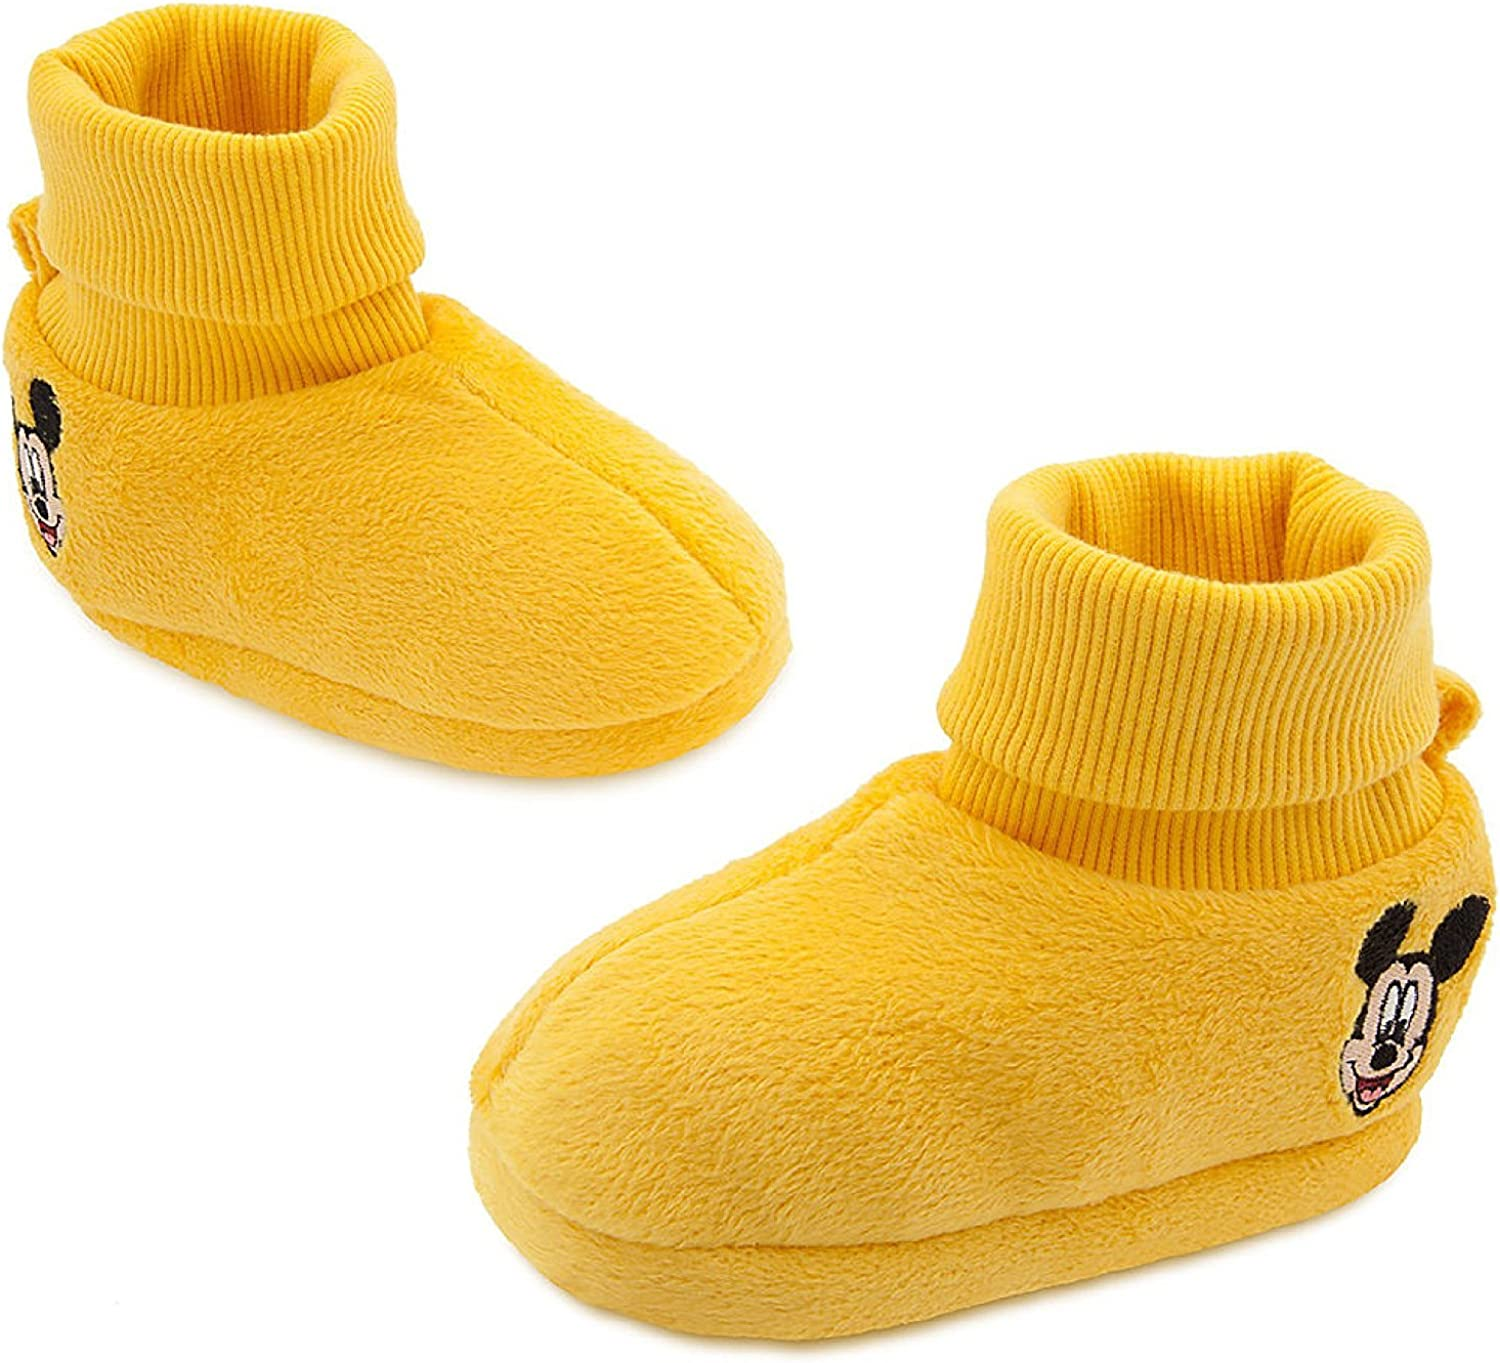 amazon com disney store mickey mouse on with the shoe yellow costume shoes for baby clothing disney store mickey mouse on with the shoe yellow costume shoes for baby